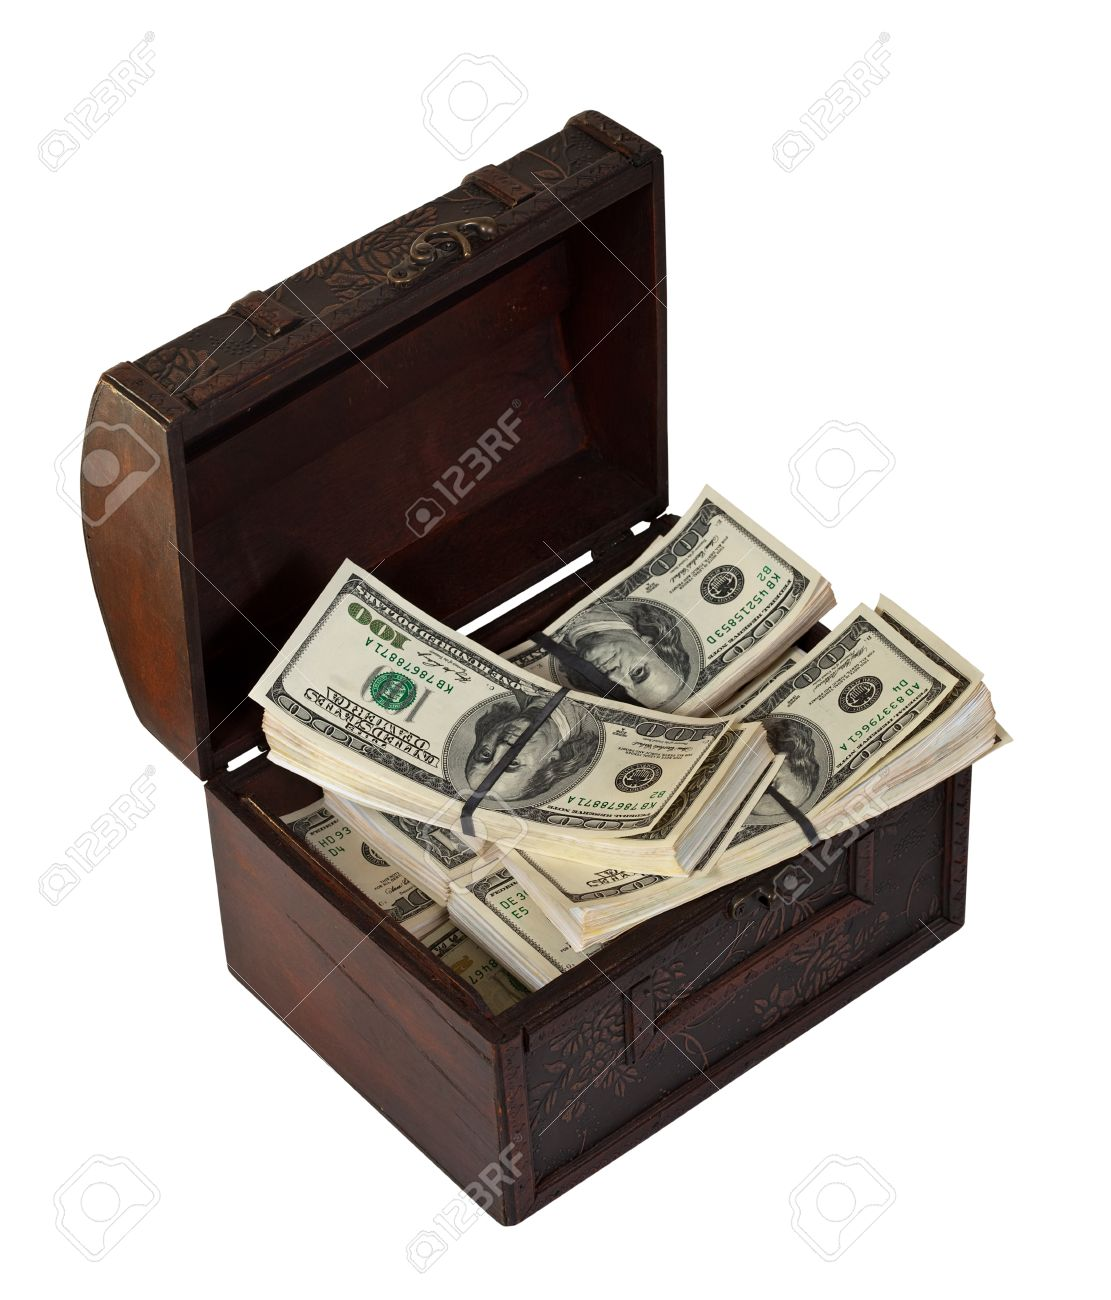 Many bundles of US dollars banknotes in treasure chest. Isolated on white background Stock Photo - 12435031